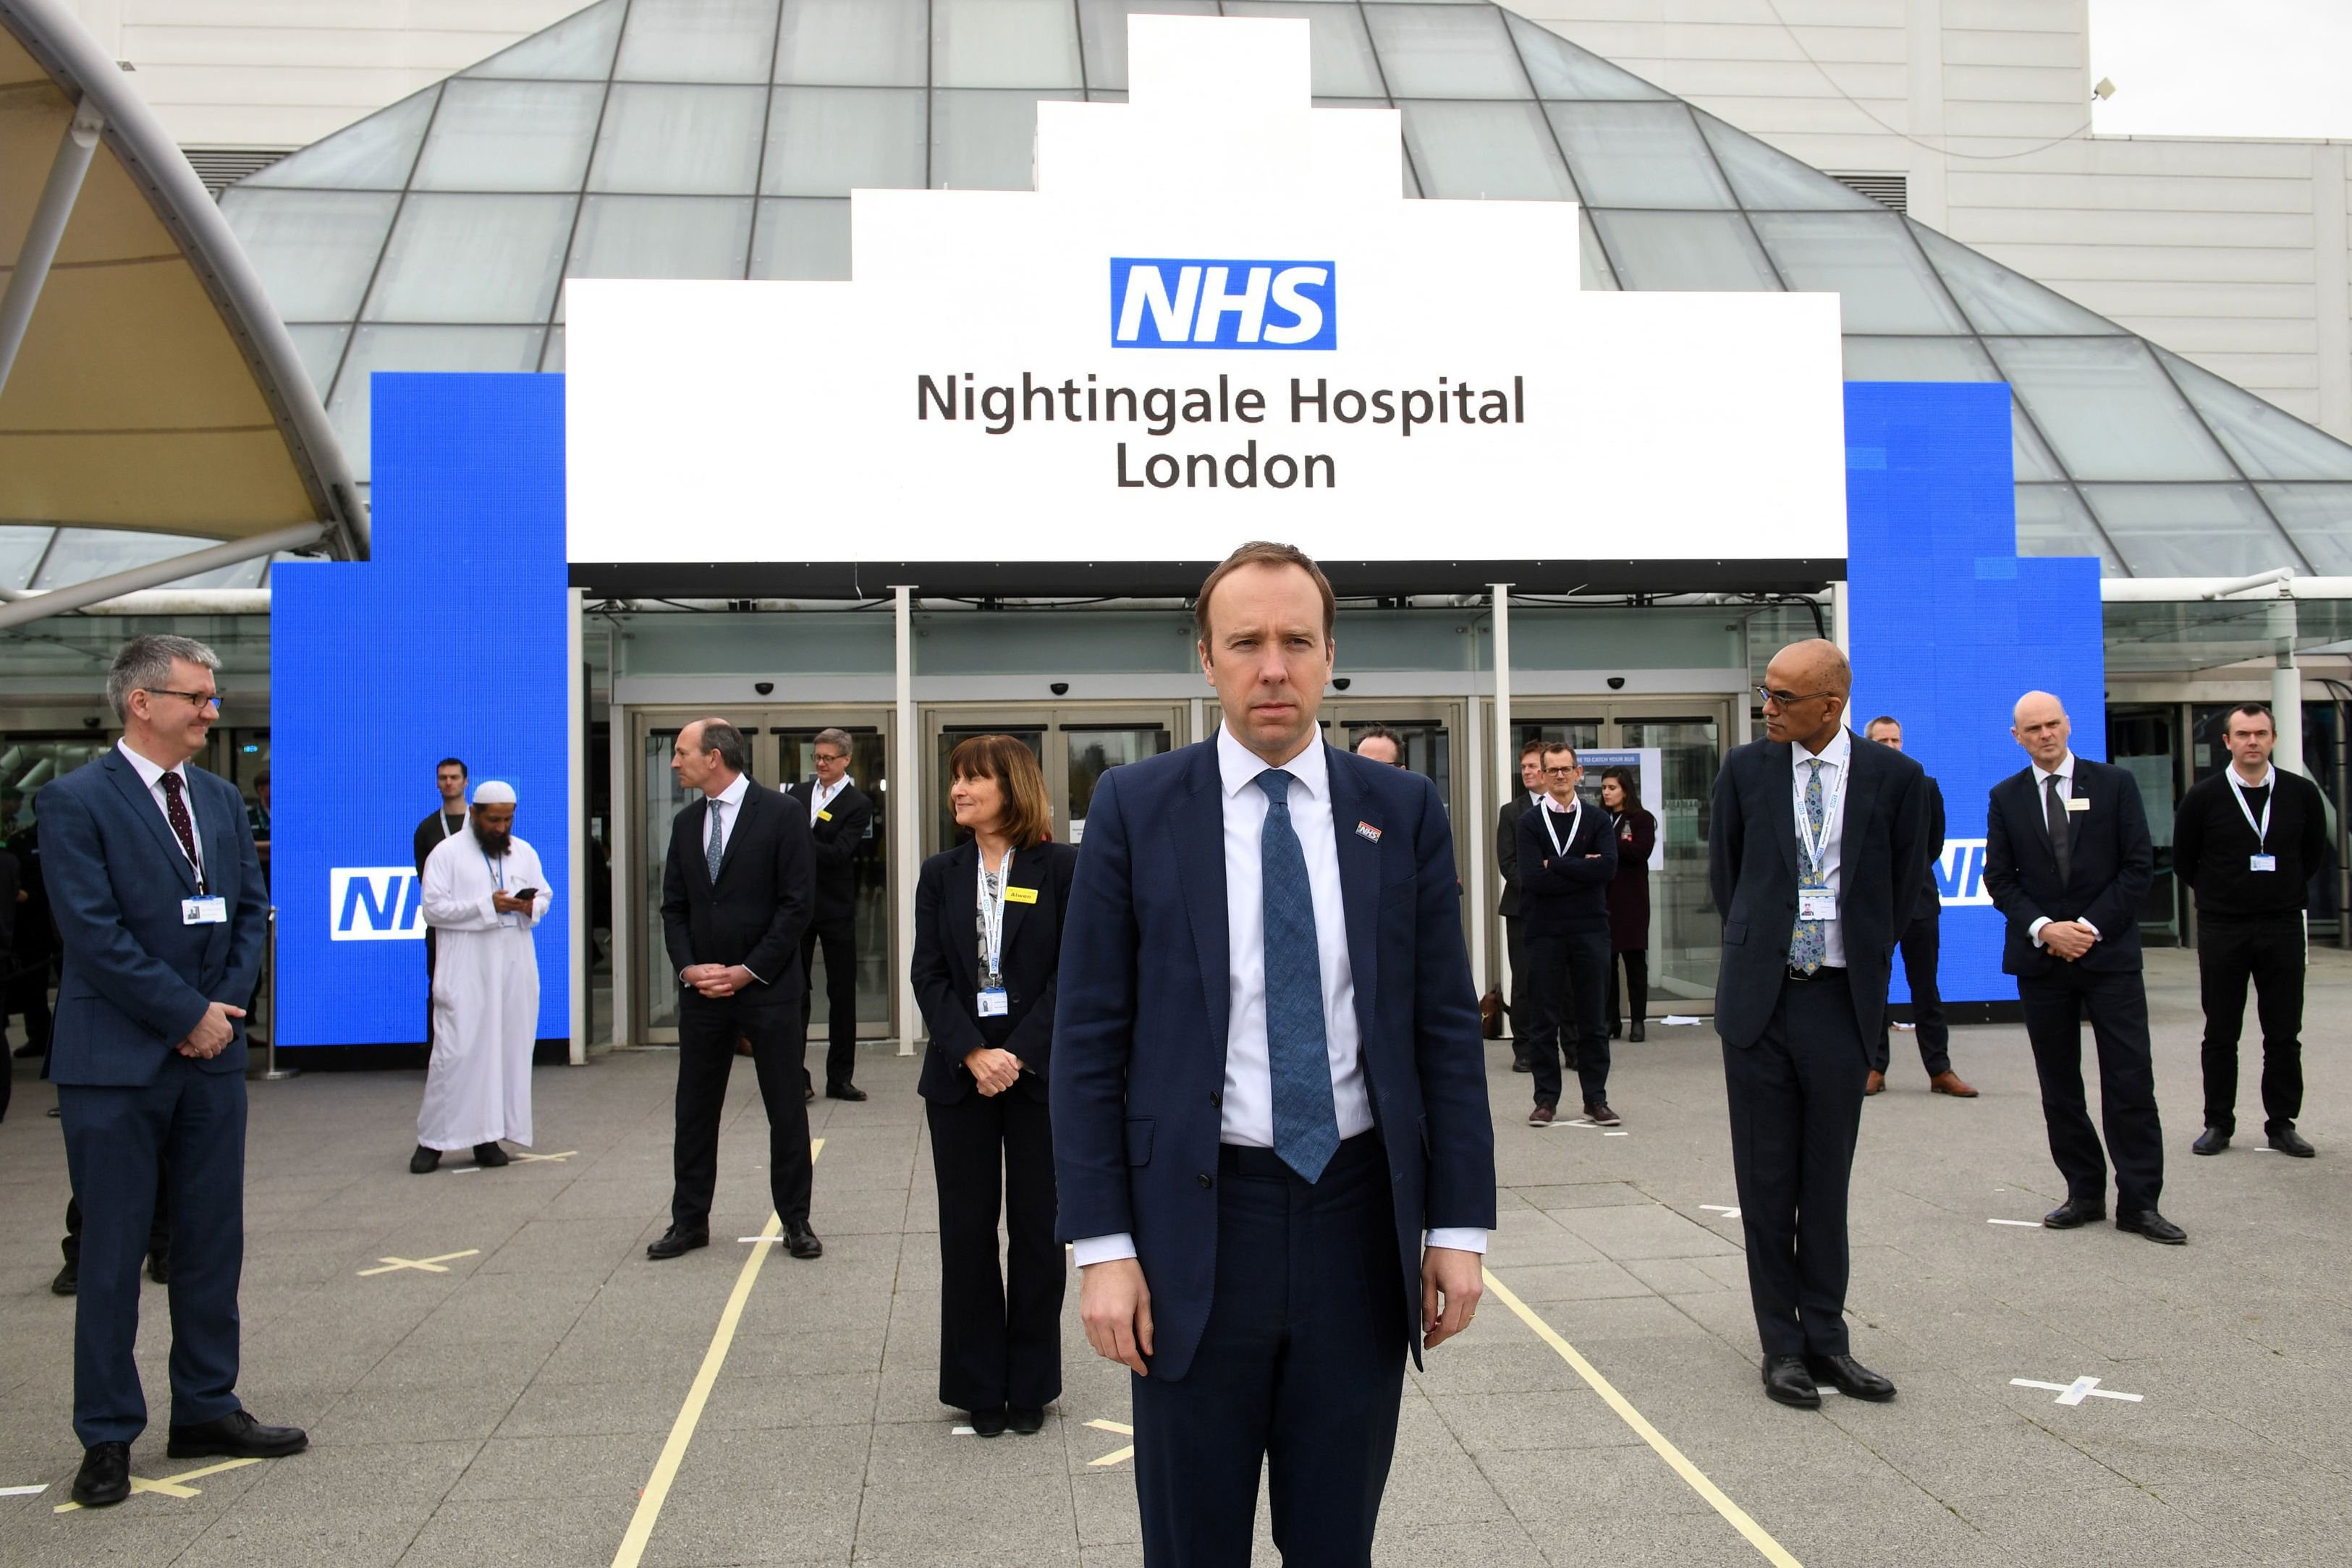 Britain's Health Secretary Matt Hancock prepares for the opening of the NHS Nightingale field hospital, created at the ExCeL London exhibition center, in London on Friday, April 3, 2020, to help patients suffering from the novel coronavirus. (AFP Photo)